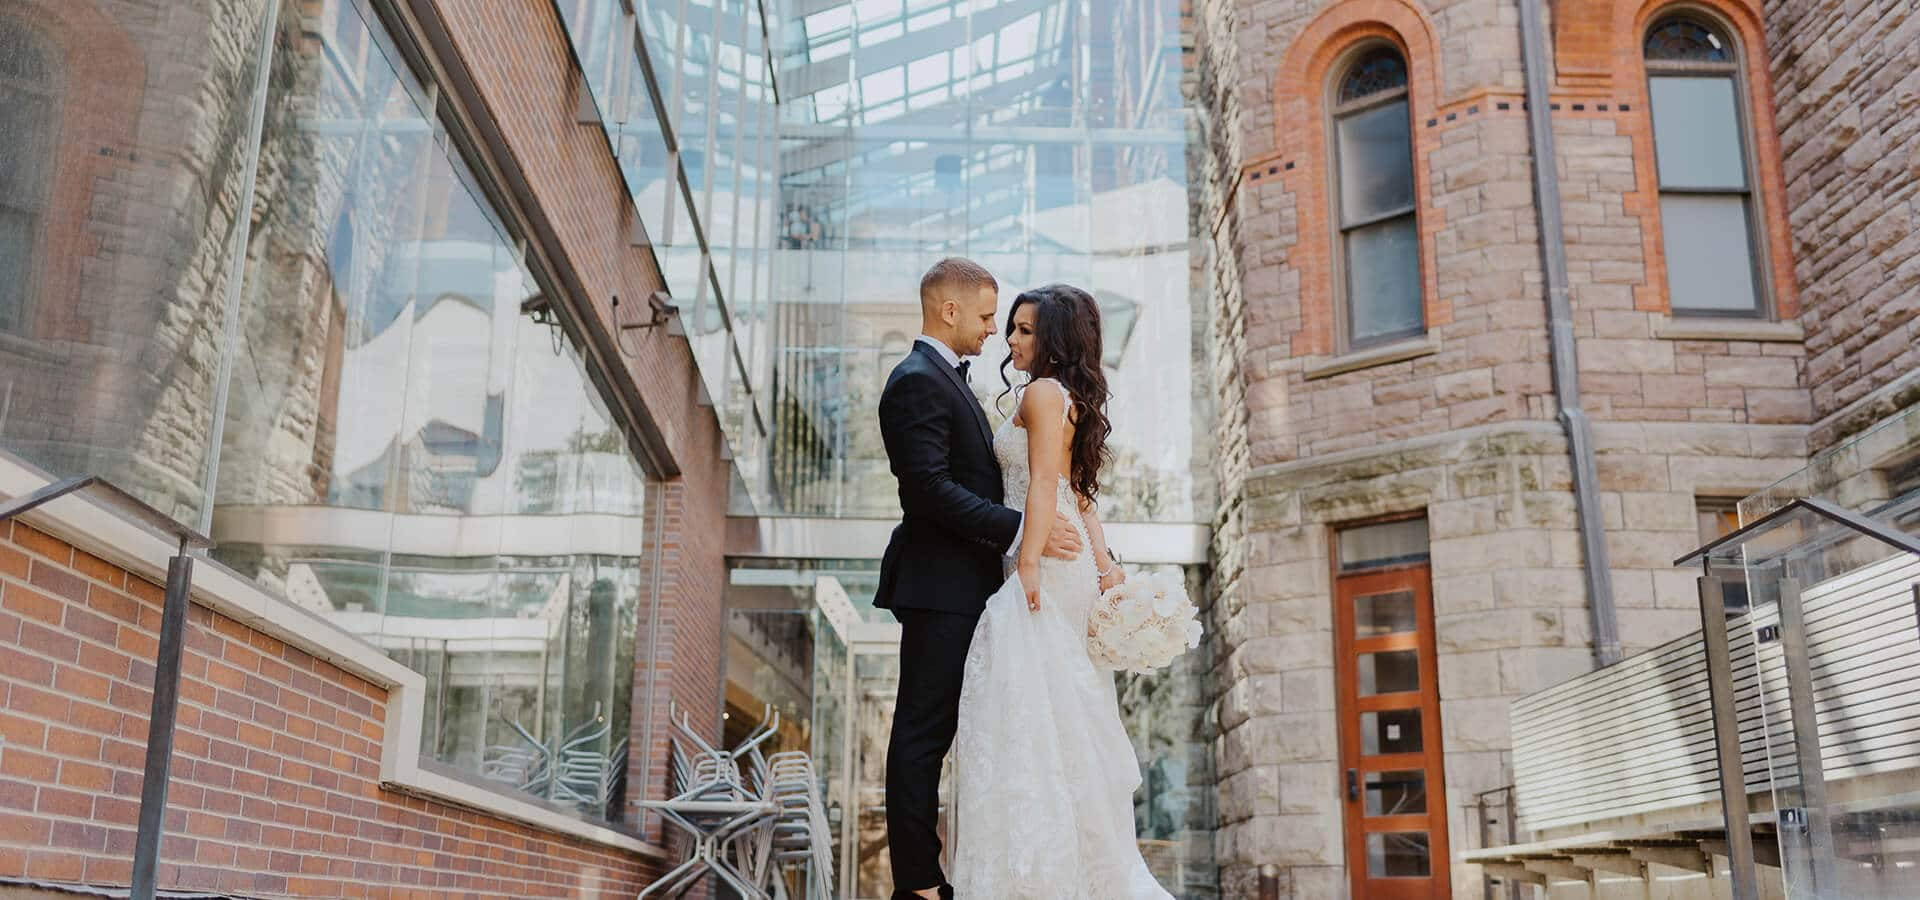 Hero image for Jenny and Alex's Elegant Nuptials at the Royal Conservatory of Music